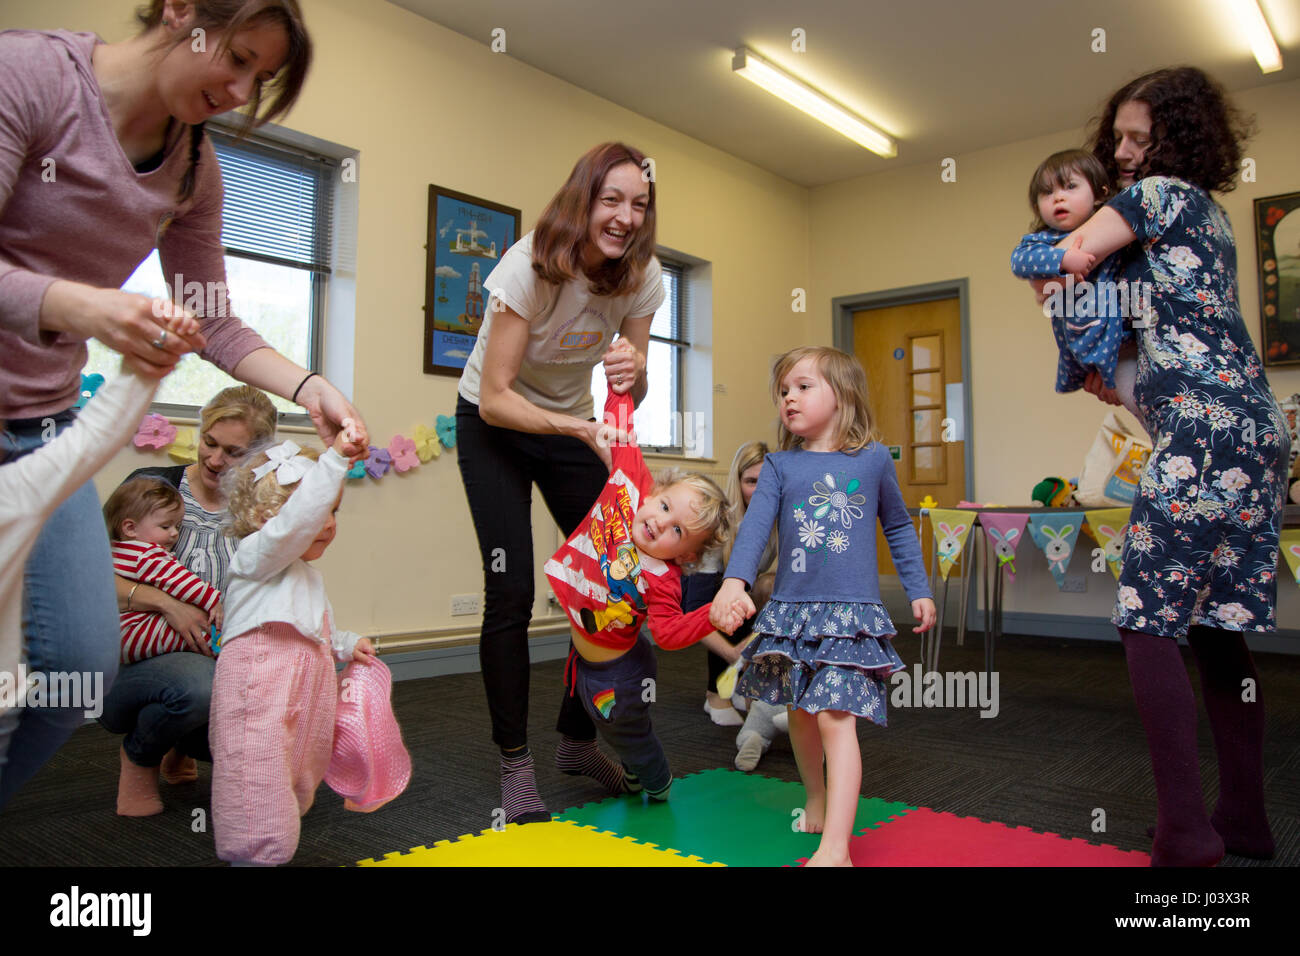 Playing games at a local playgroup - Stock Image